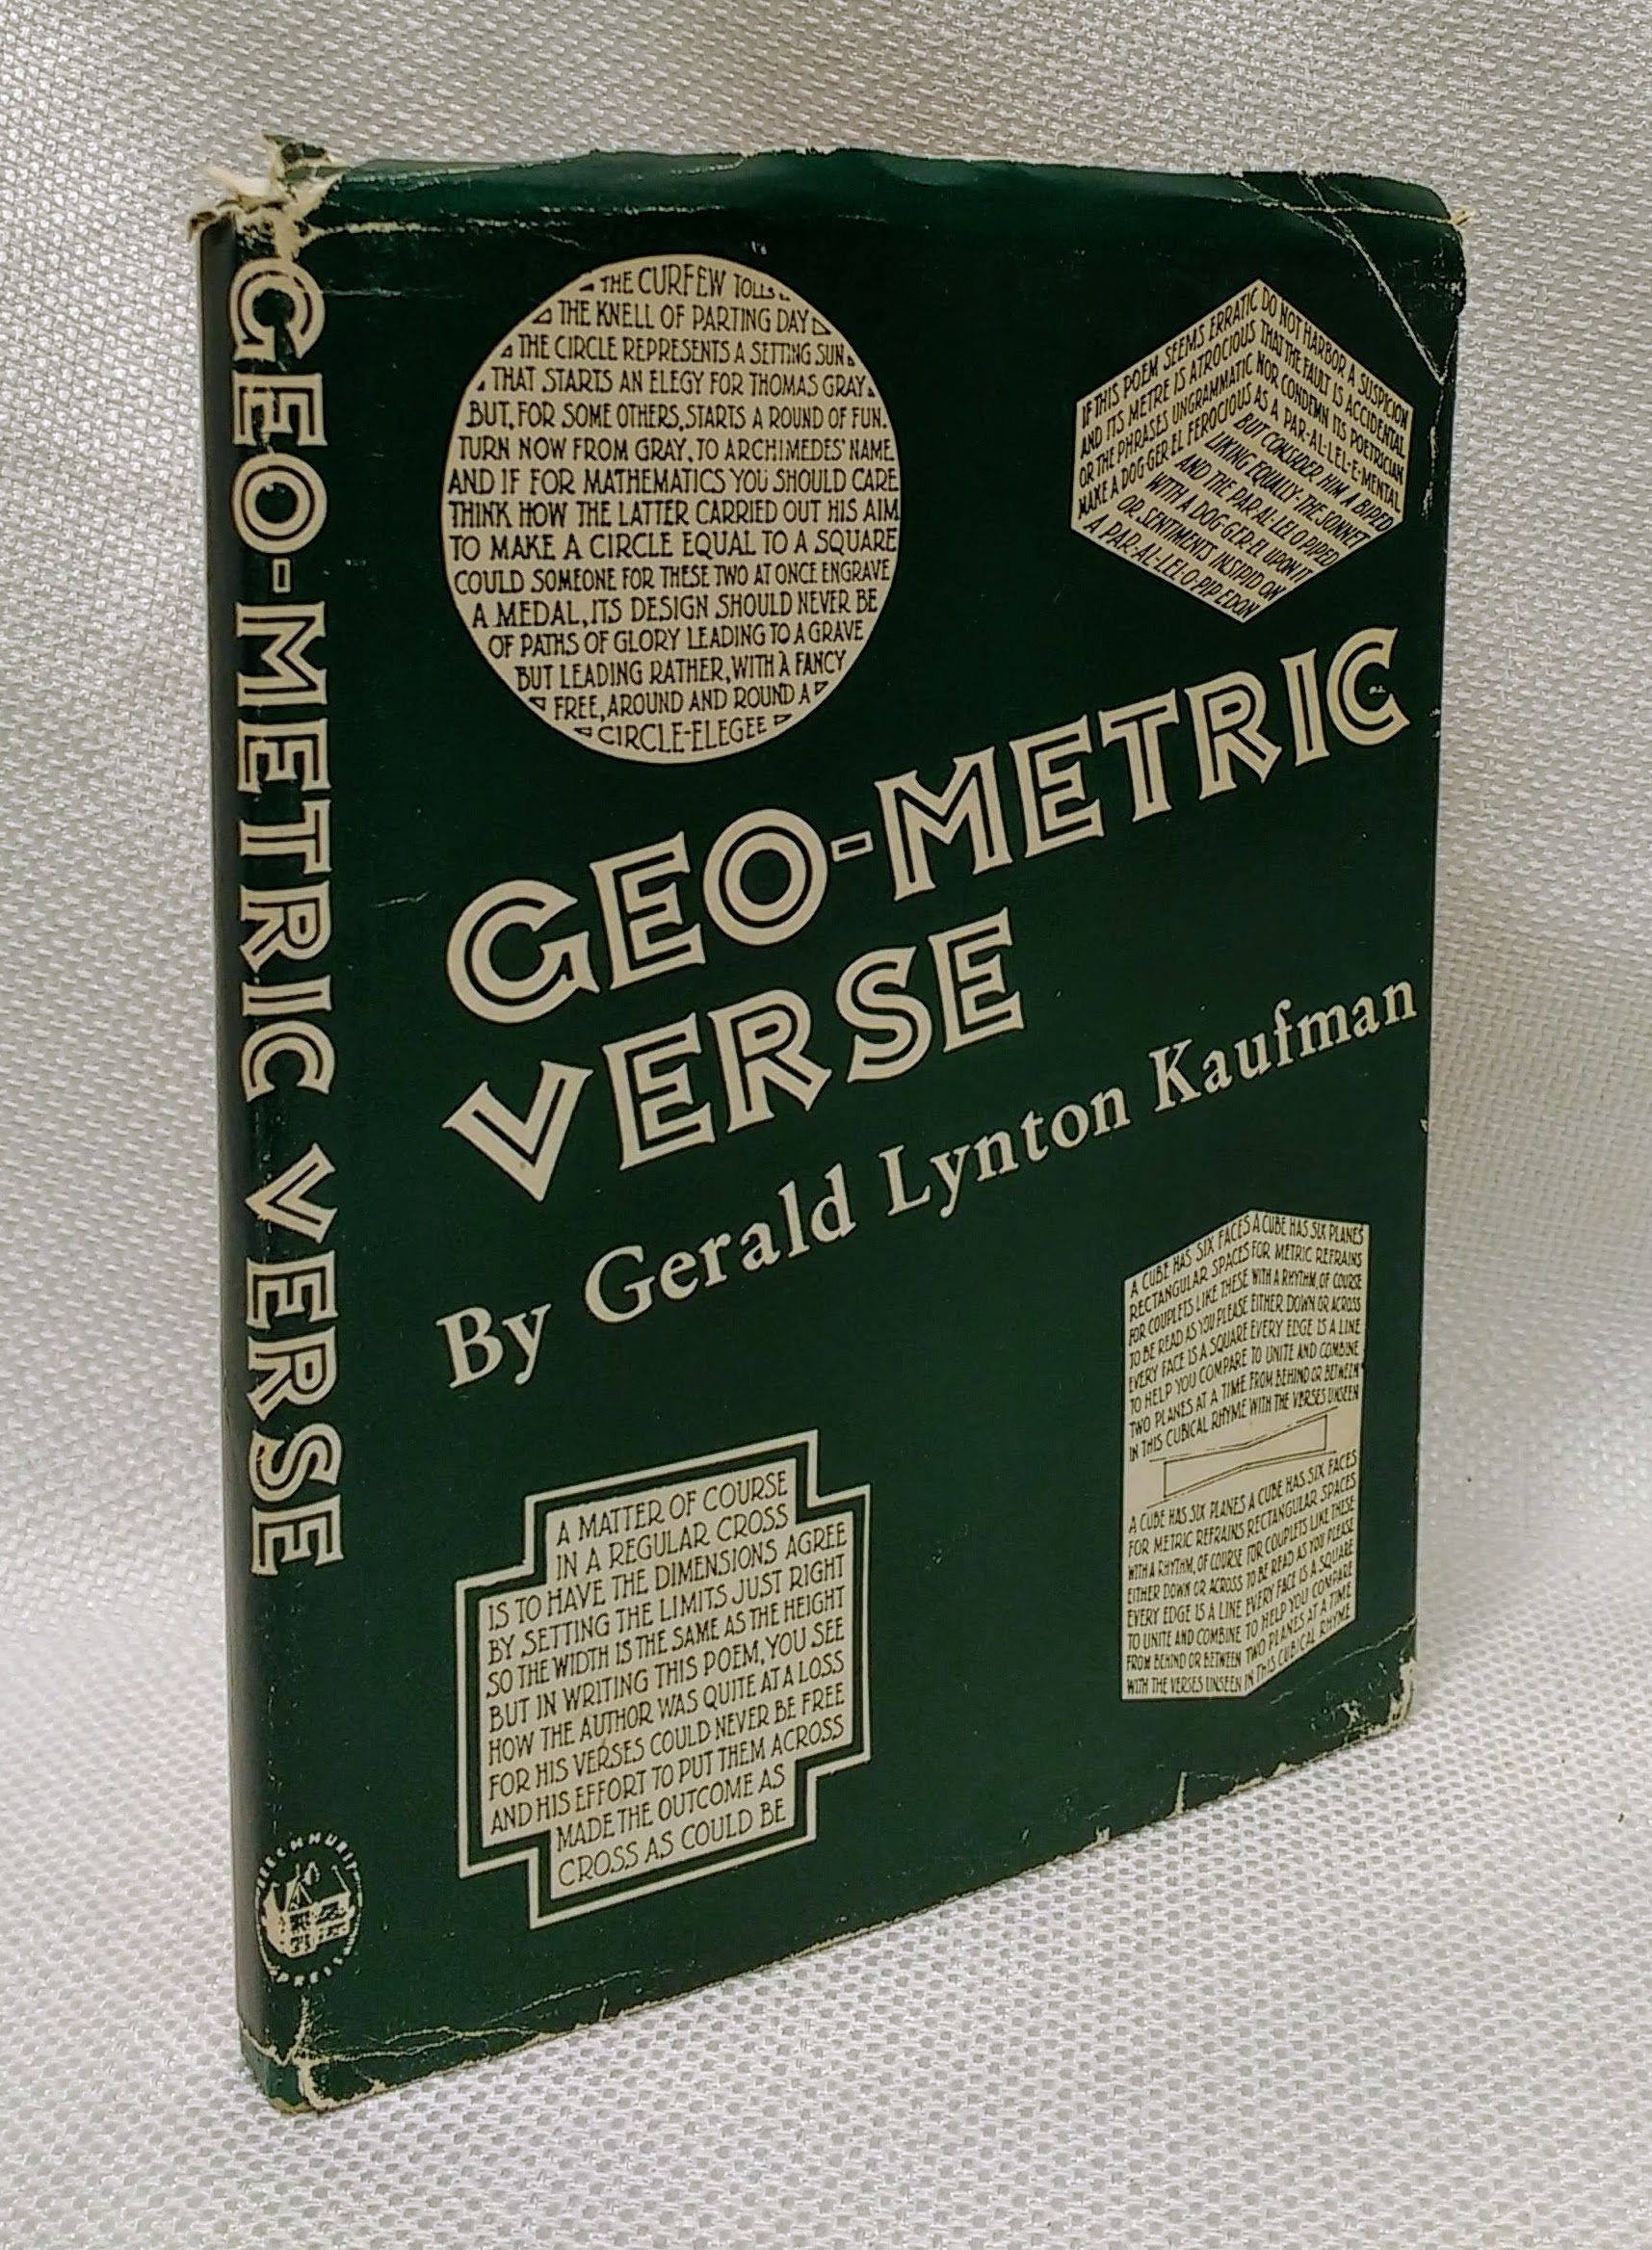 Geo-Metric Verse: Poetry Forms in Mathematics Written Mostly for Fanatics, Kaufman, Gerald Lynton